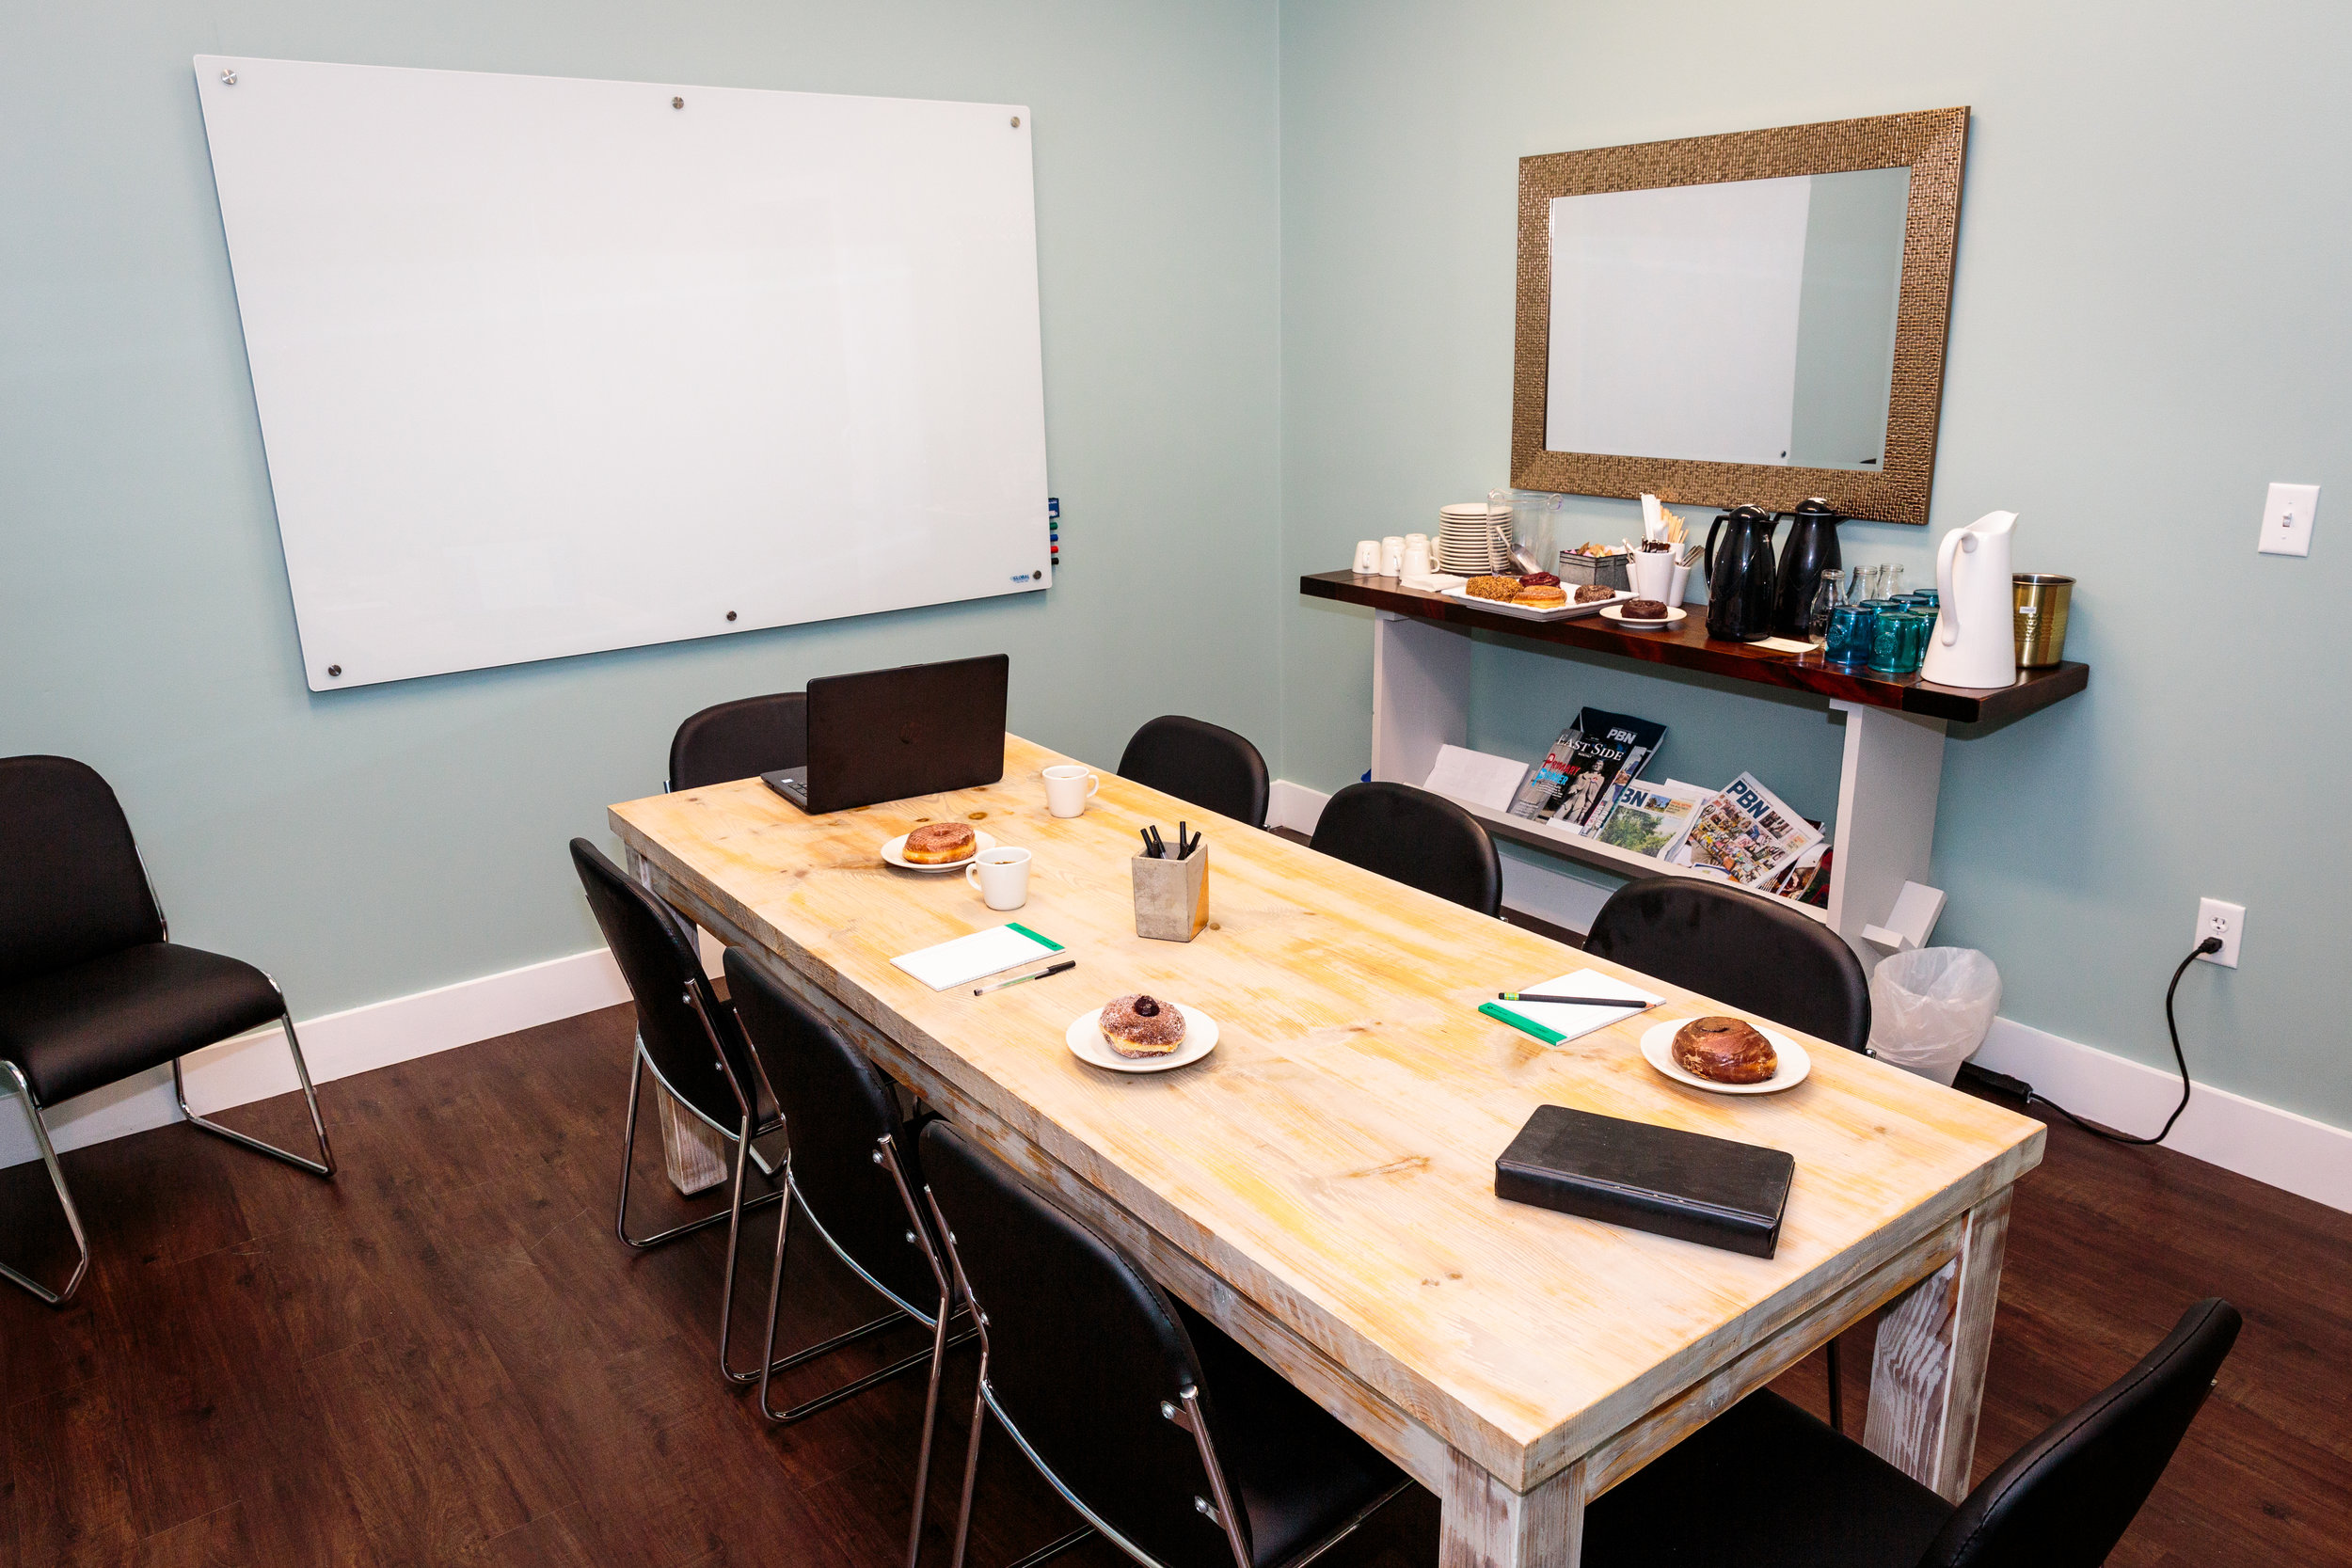 Work meetings, special events, or any time you need a private room in a comfortable, relaxed environment, Knead has it